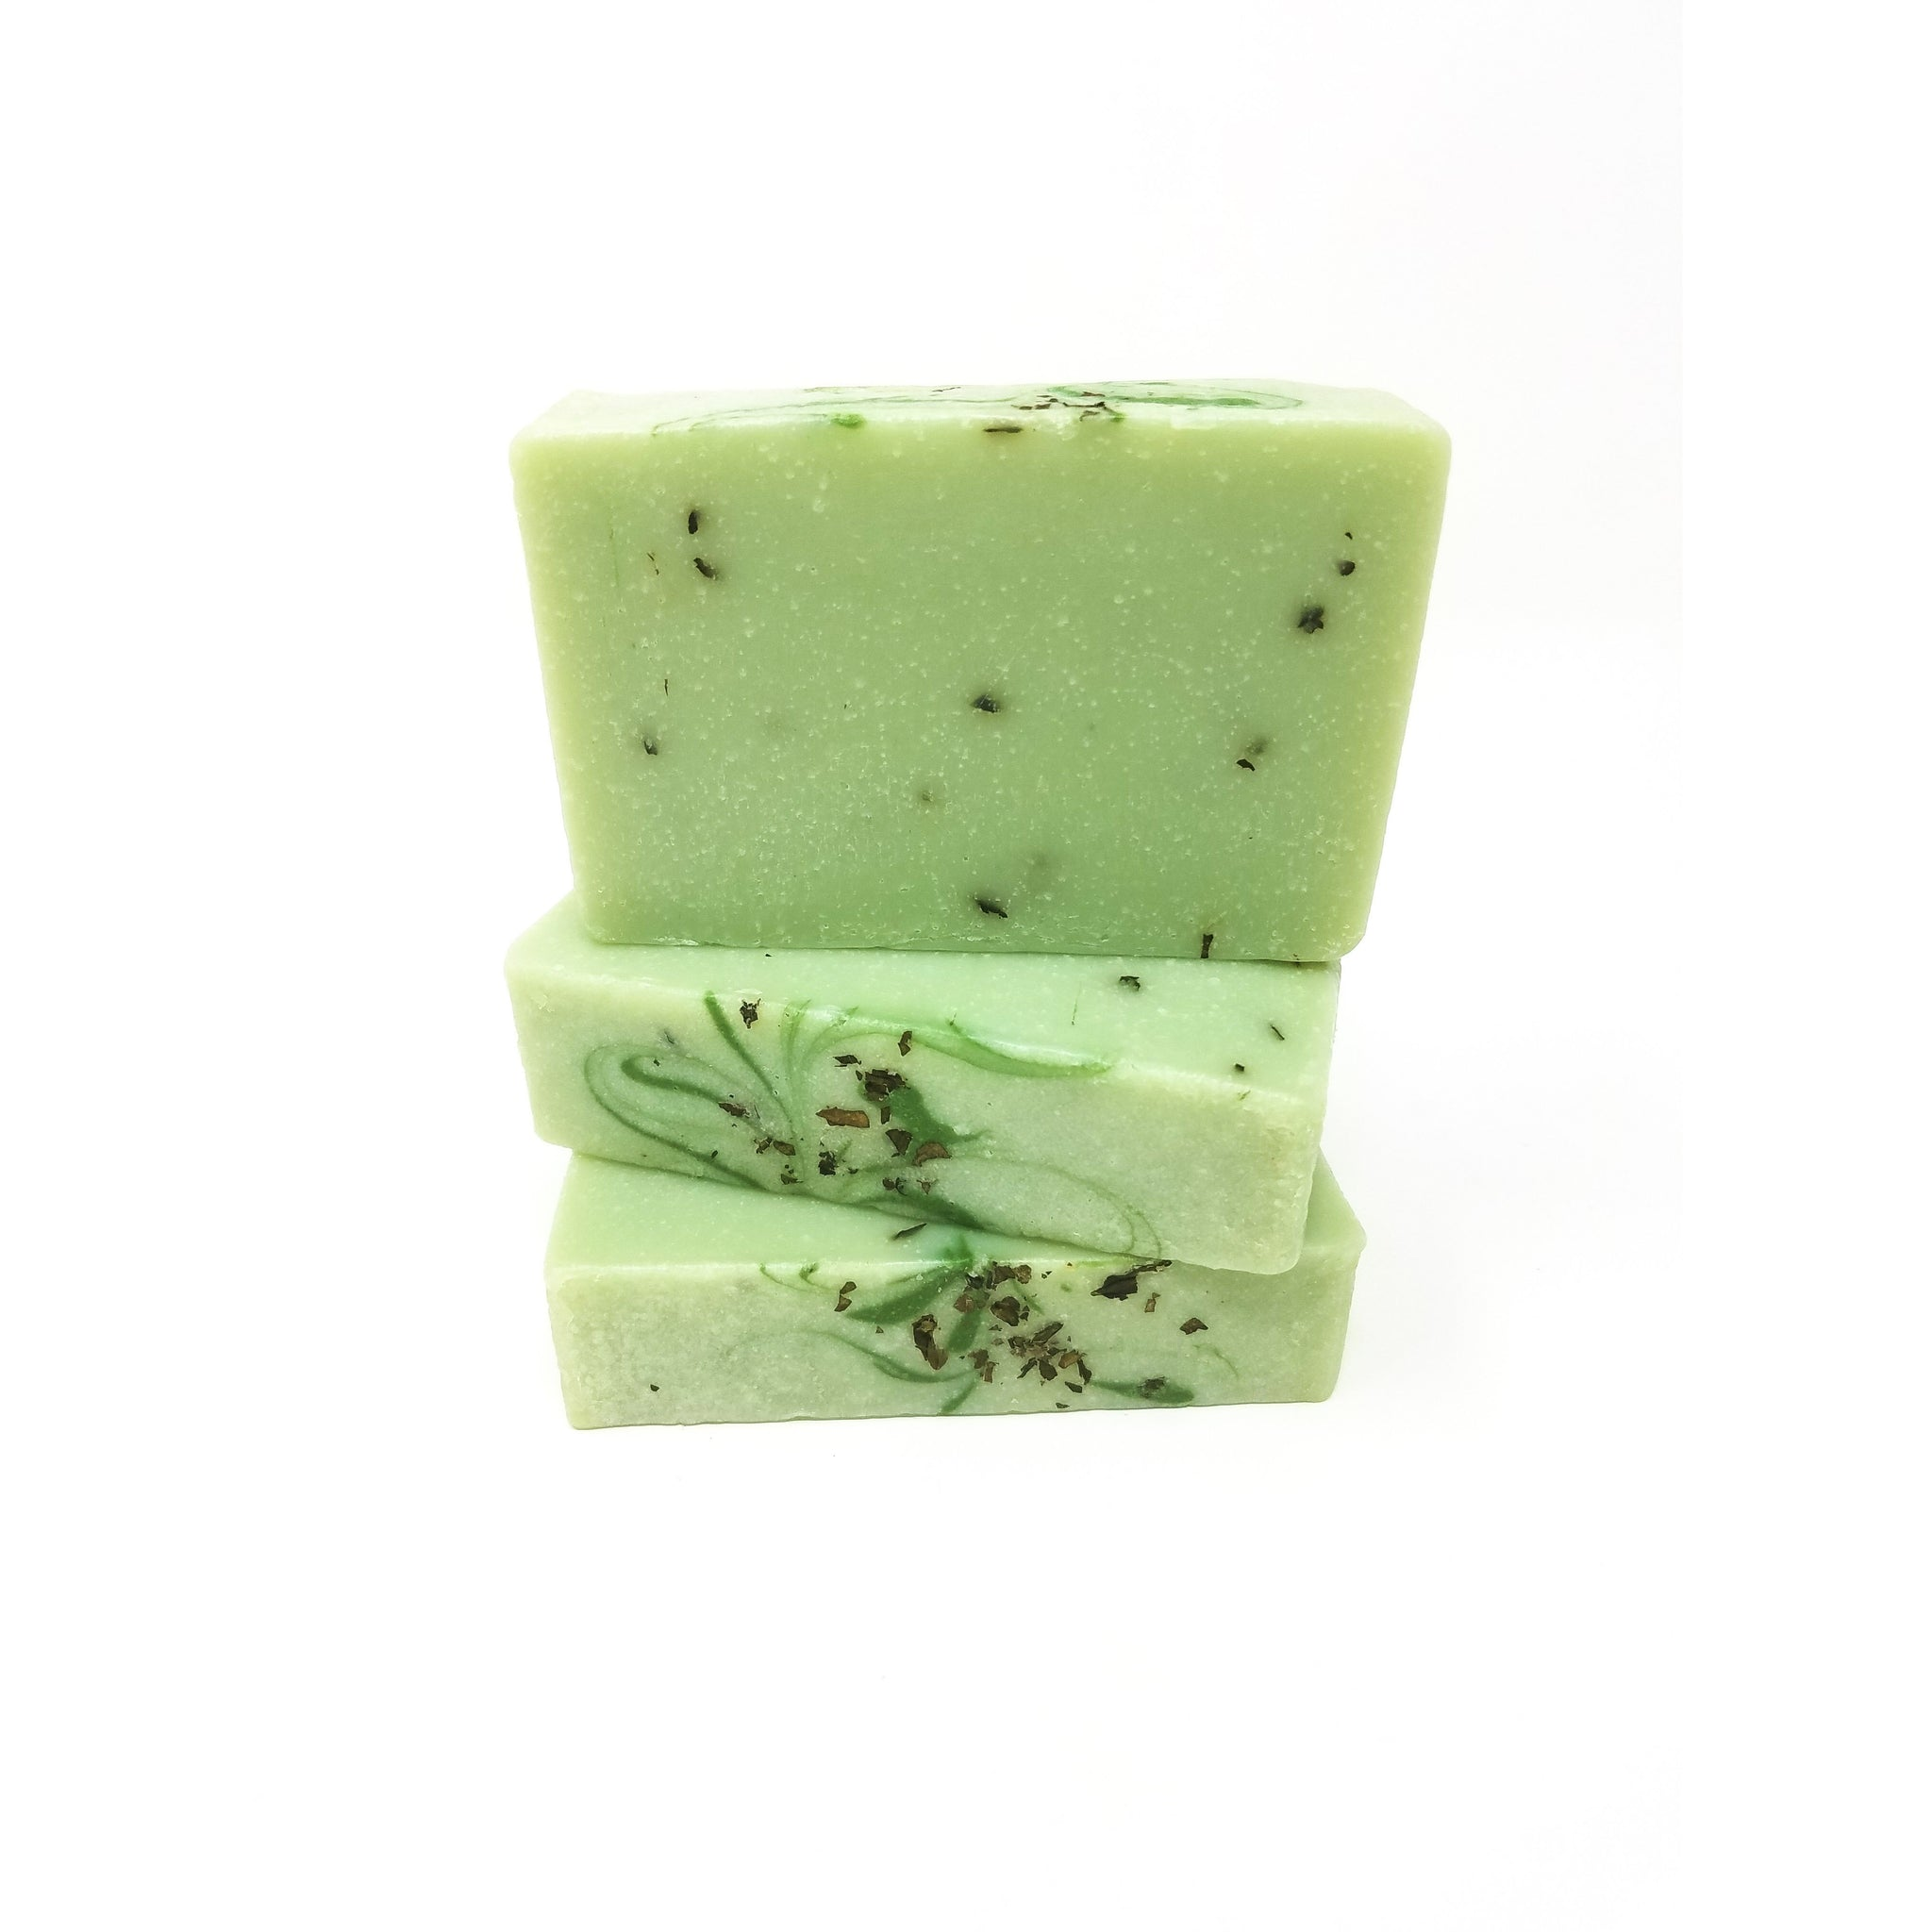 Eucalyptus/Spearmint Soap